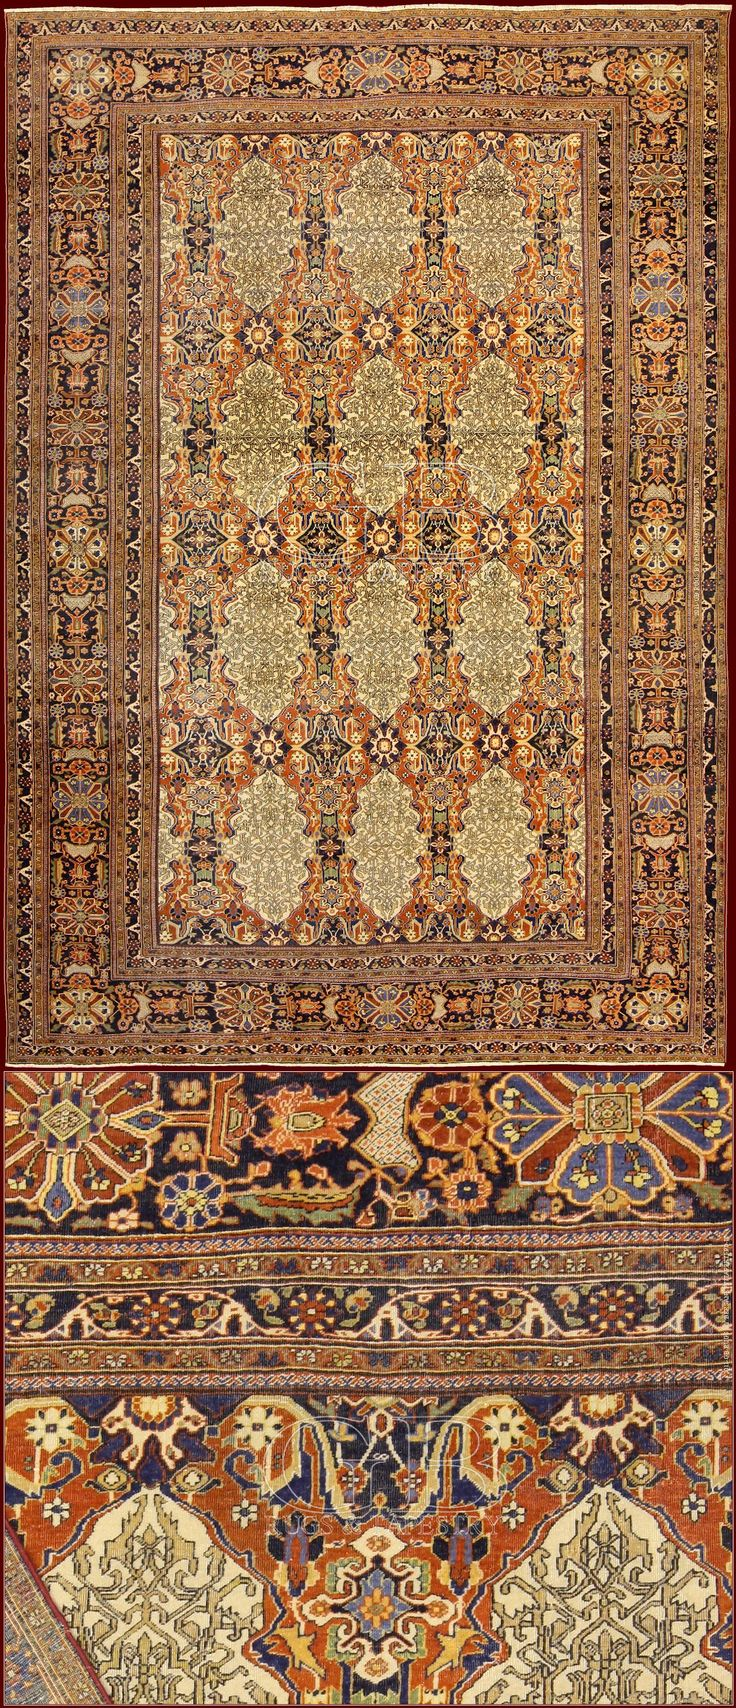 ANTIQUE KASHAN MOHTASHAM RUG	cm 330 x 230	ft 10'9 x 7'6 Cod:: 141134945038 Knots/dmq: 8000 Extraordinary piece with very dense knot attributable to master Kashan Mohtasham's manufactures! The pile is so shiny to seem knotted with the silk. It's a exemplary of old epoch (end of 19th. century) in perfect state of conservation: it has never had restorations and it is completely full pile, rare thing in rugs as this.